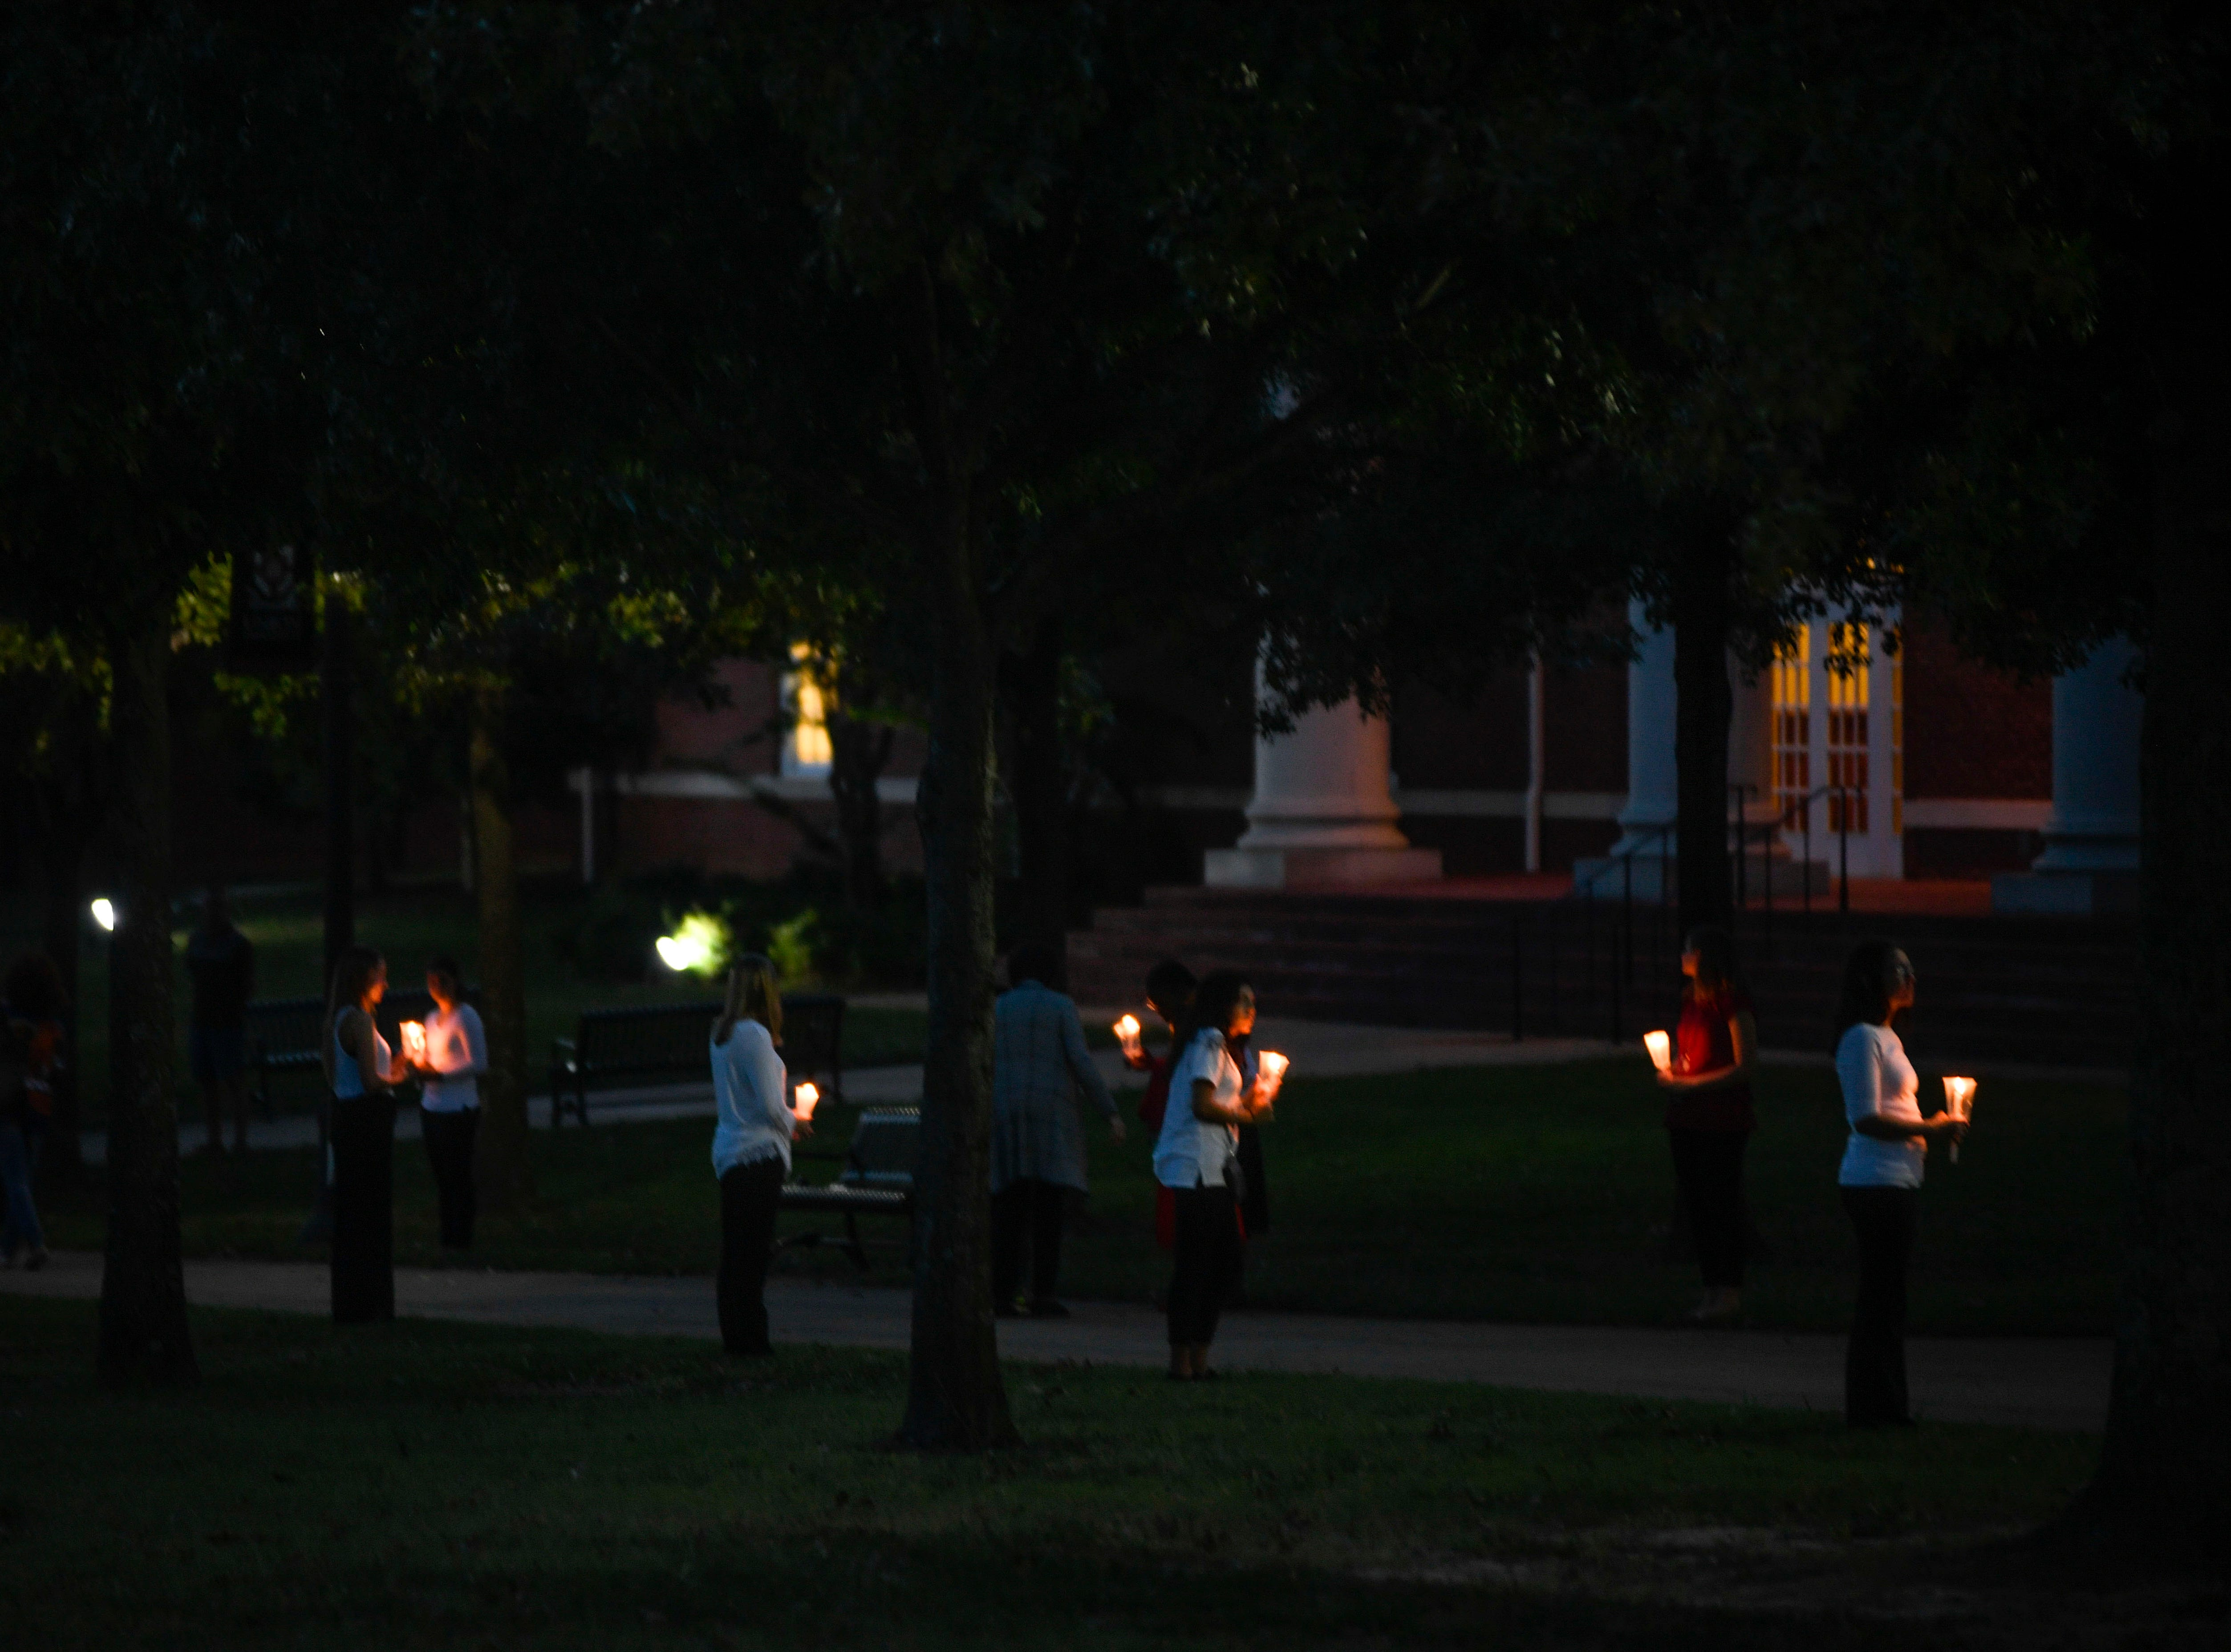 Union University students hold candles for a vigil during the annual Remember Me Walk hosted at Union University in Jackson, Tenn., on Monday, Oct. 1, 2018.